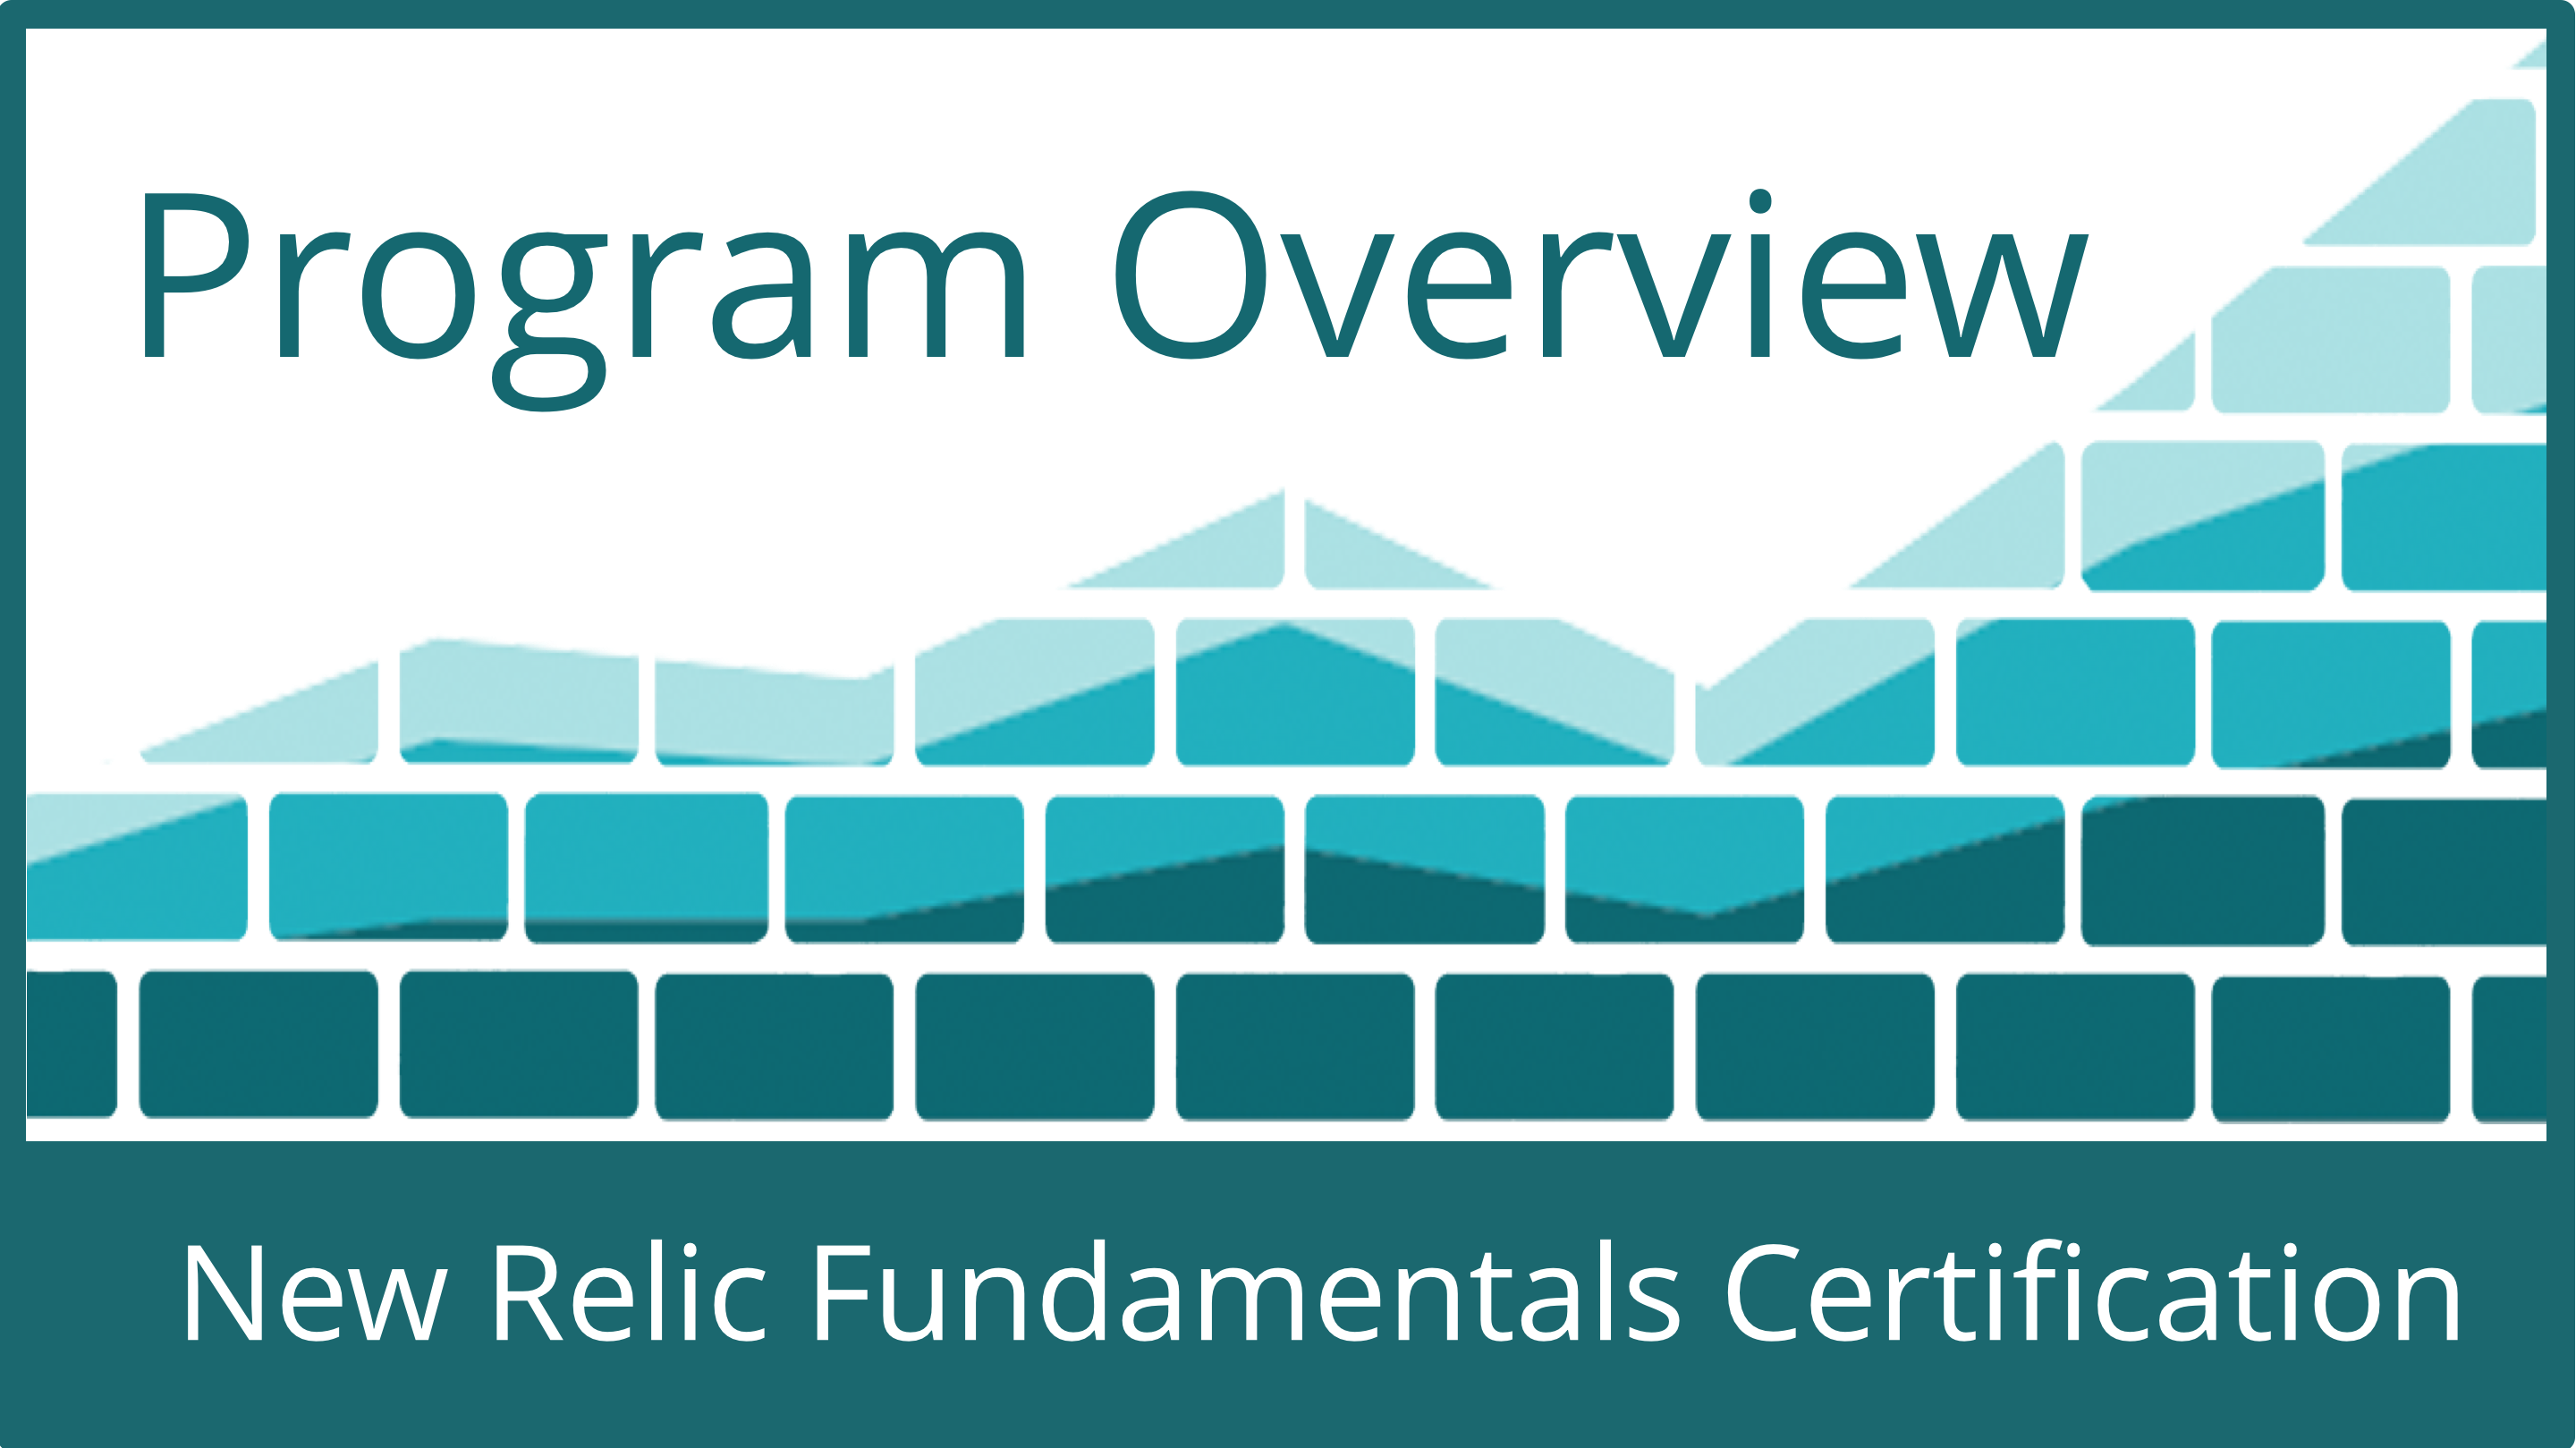 ILT New Relic Fundamentals Certification Program Overview